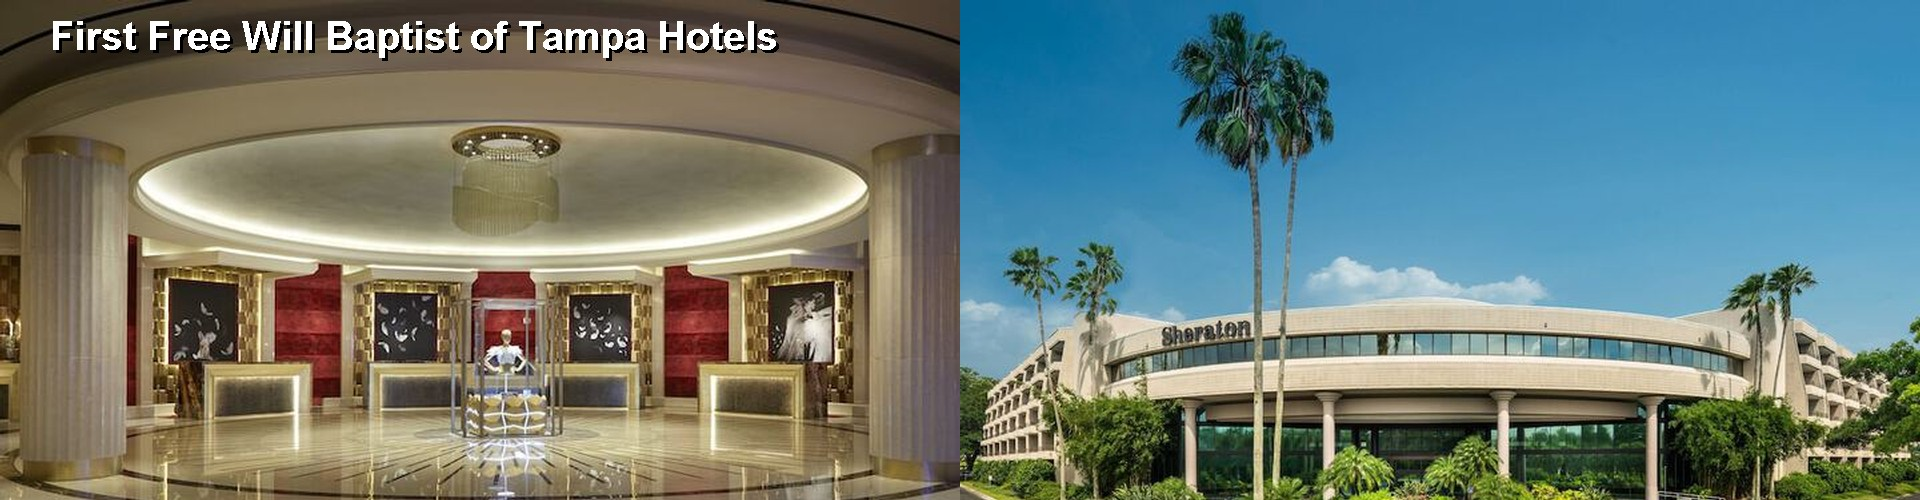 5 Best Hotels near First Free Will Baptist of Tampa